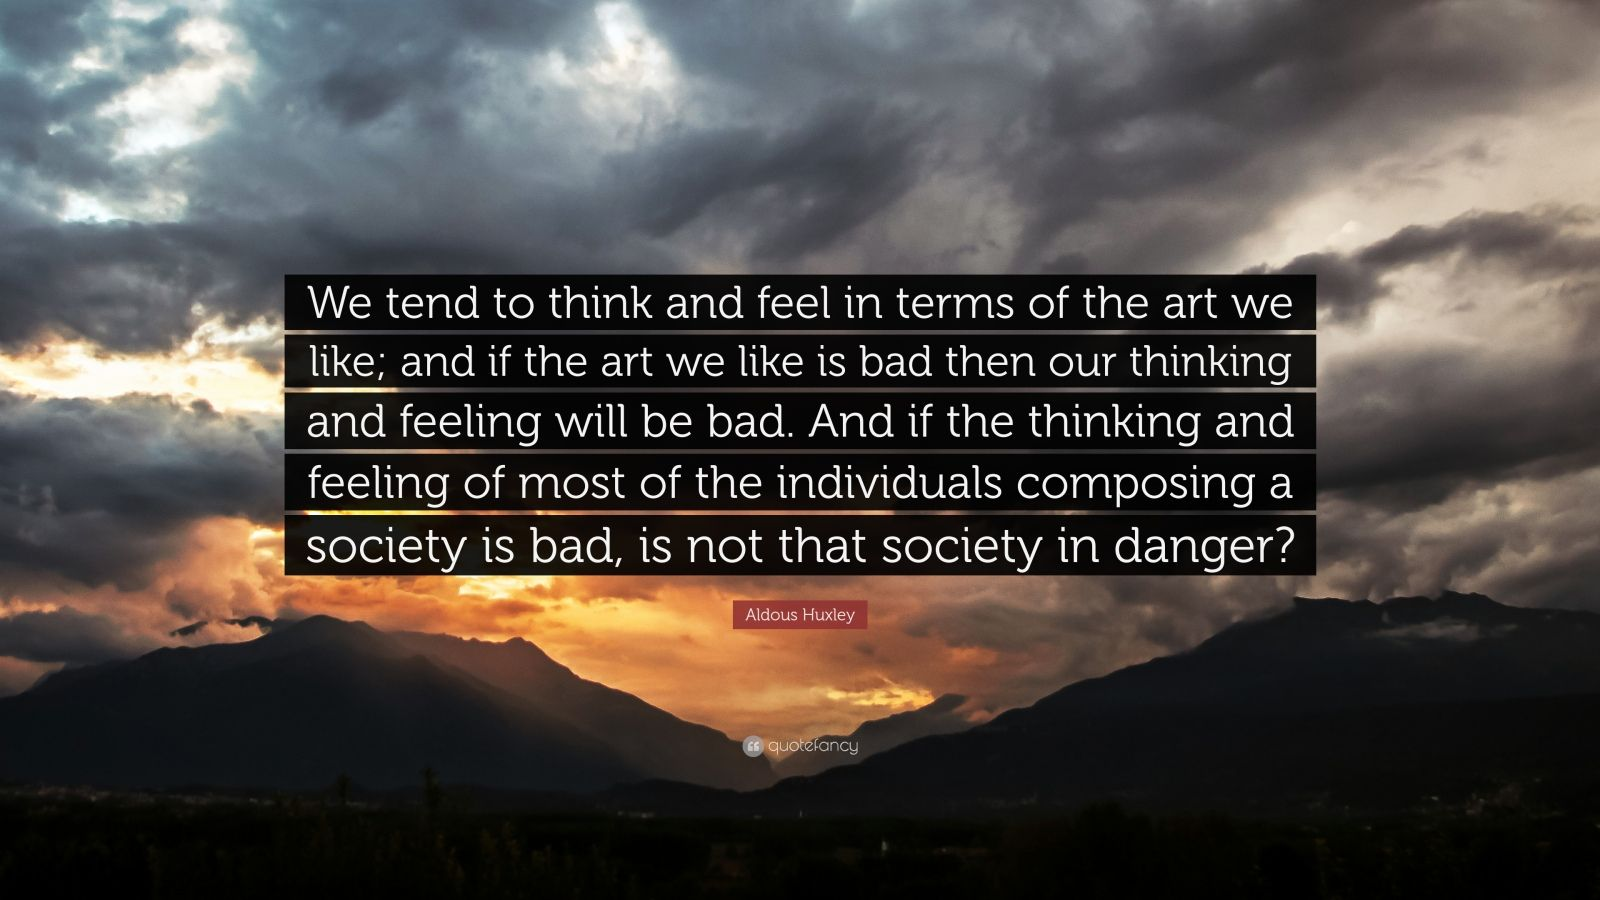 "Aldous Huxley Quote: ""We tend to think and feel in terms of the art we like; and if the art we like is bad then our thinking and feeling will be bad. And if the thinking and feeling of most of the individuals composing a society is bad, is not that society in danger?"""